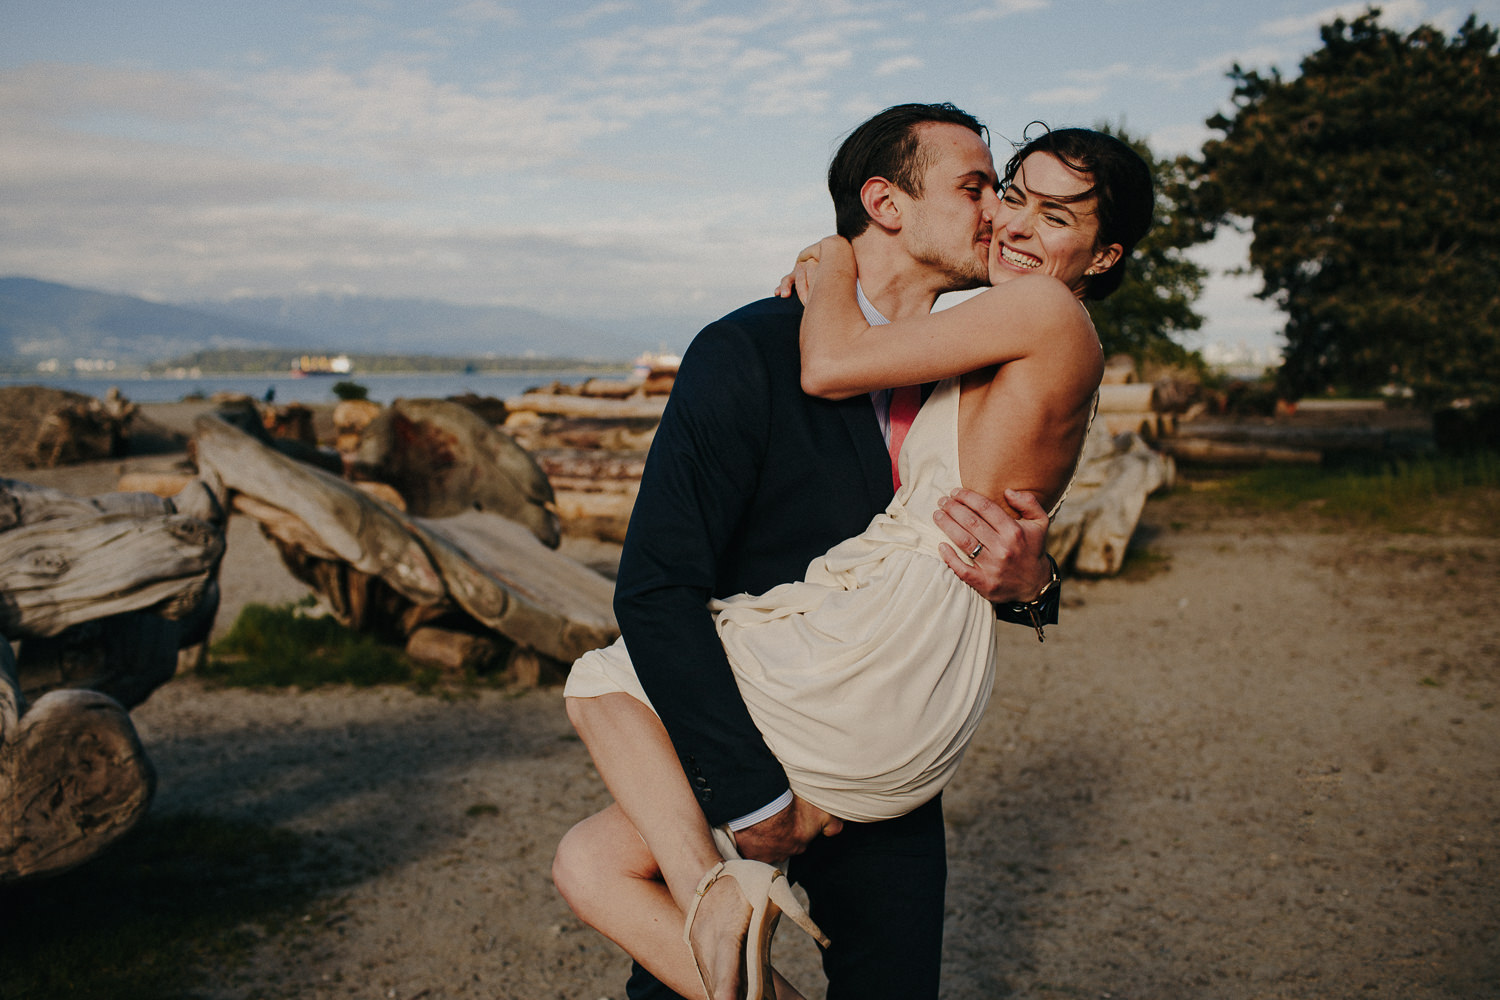 groom kissing the bride on the cheek